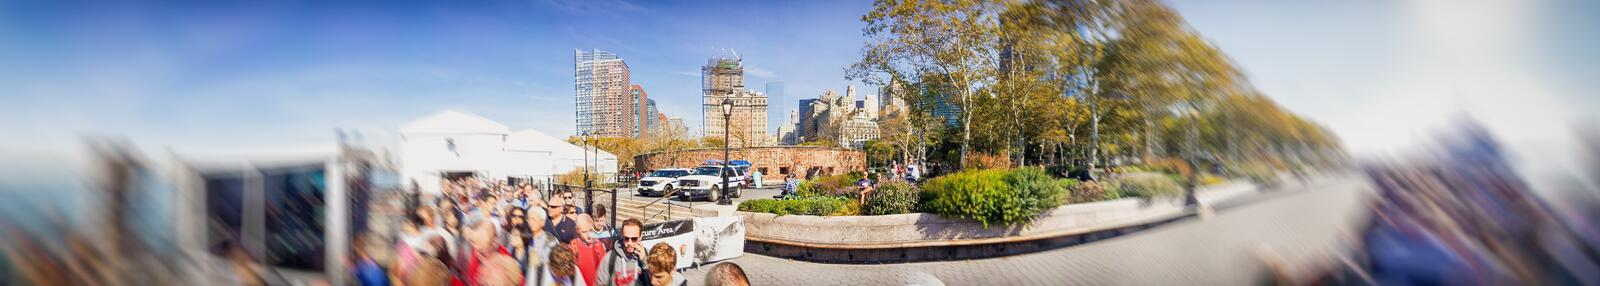 NEW YORK CITY - OCTOBER 2015: Tourists in line for Liberty Island Ferry. New York attracts 50 million tourists annually.  royalty free stock photos